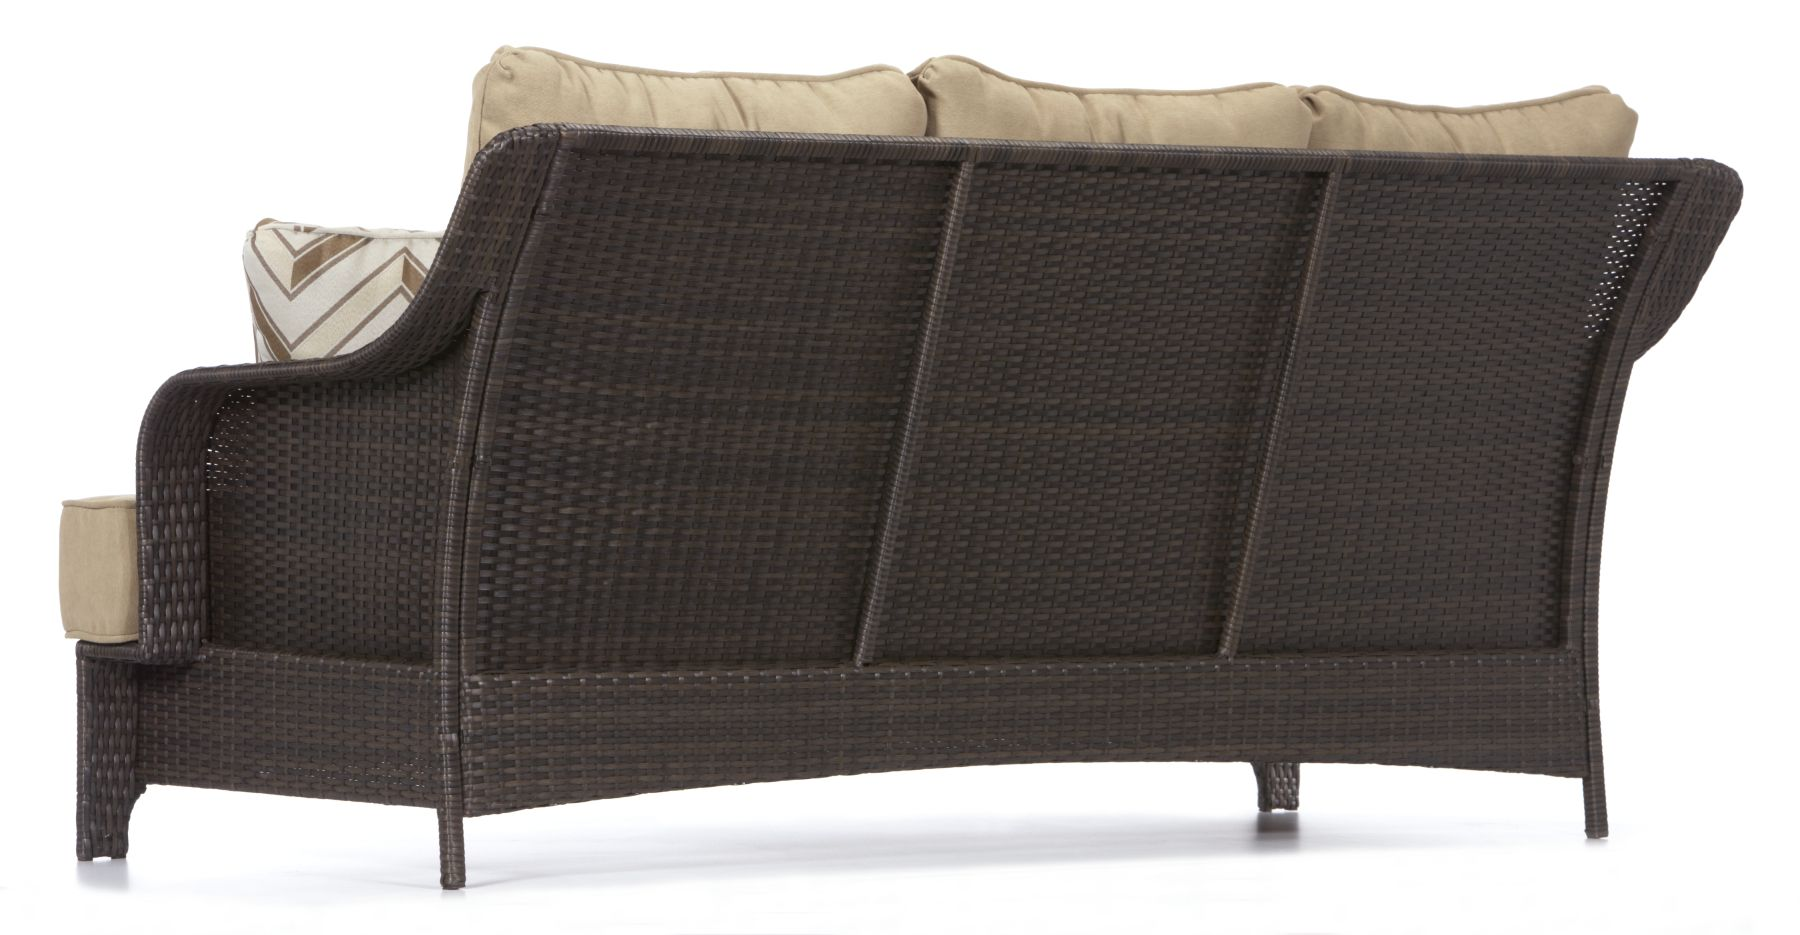 La-Z-Boy Outdoor Benjamin 3 Seat Sofa*